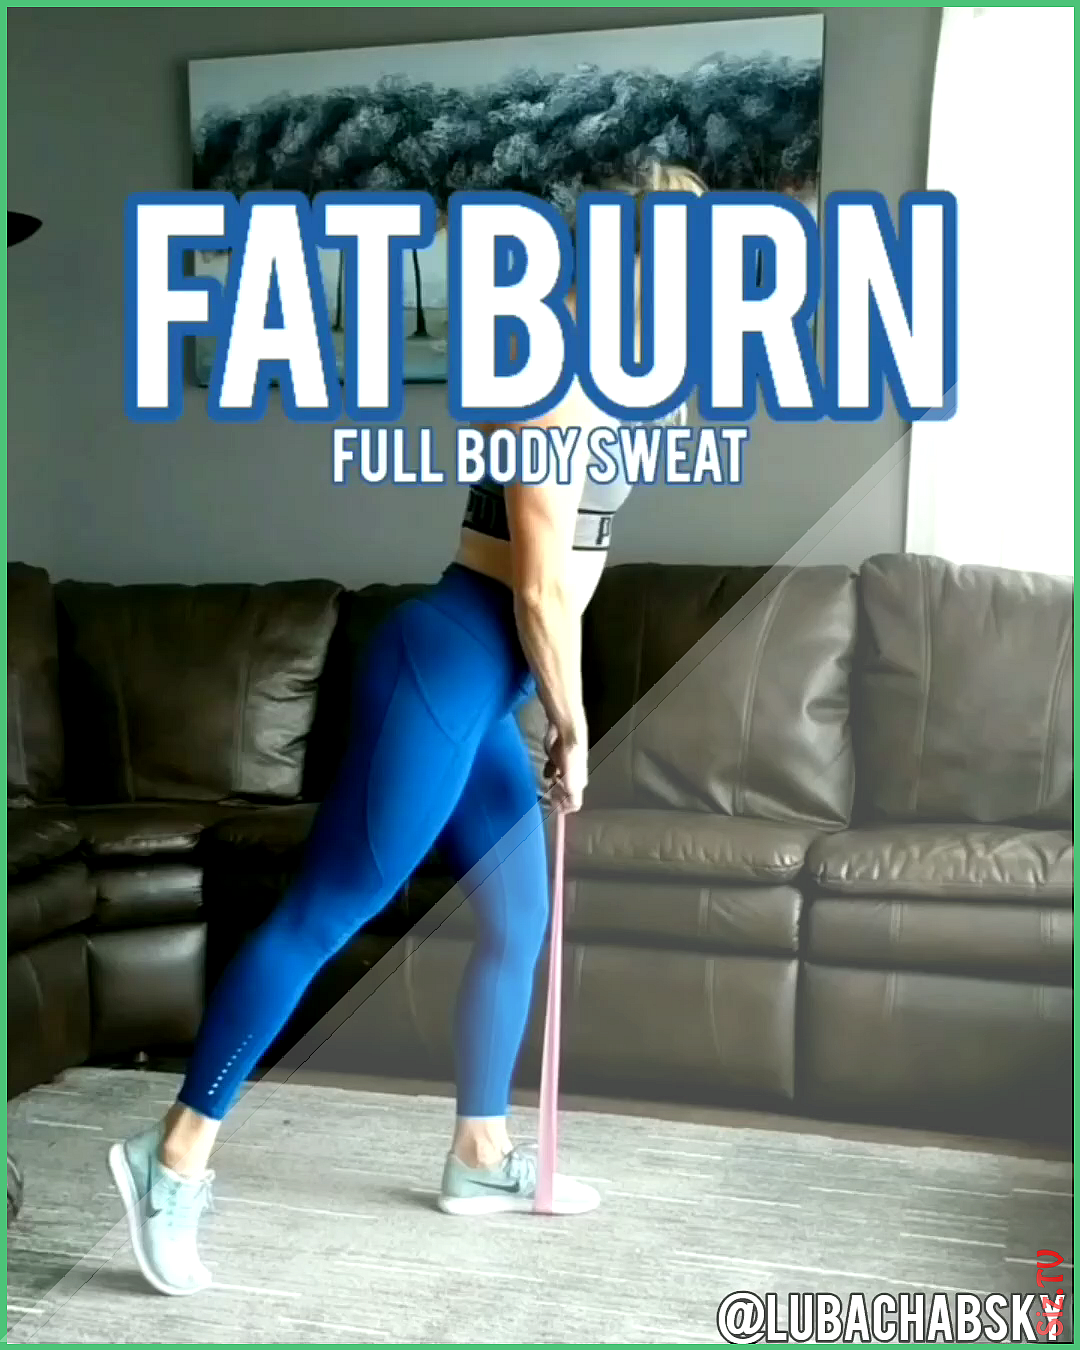 Full body HIIT workout daily HIIT workout for weight loss hiit hiitworkout hiitcardio gym Full body...